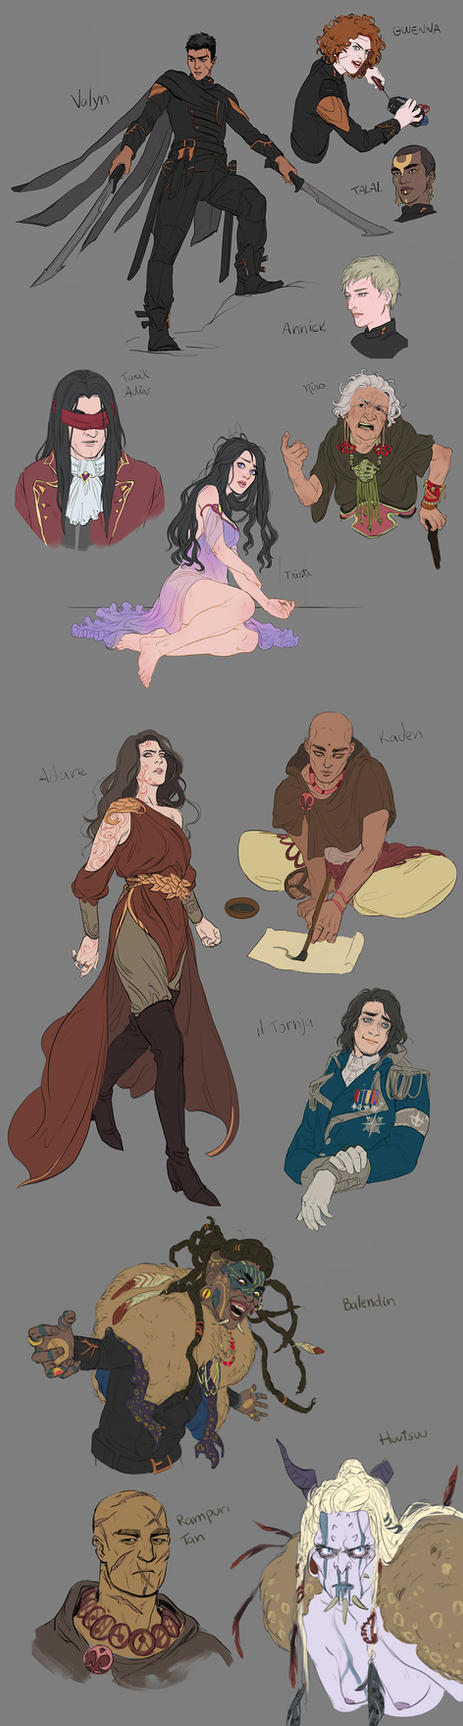 Chronicles of Unhewn Throne: Characters Concepts by GisAlmeida